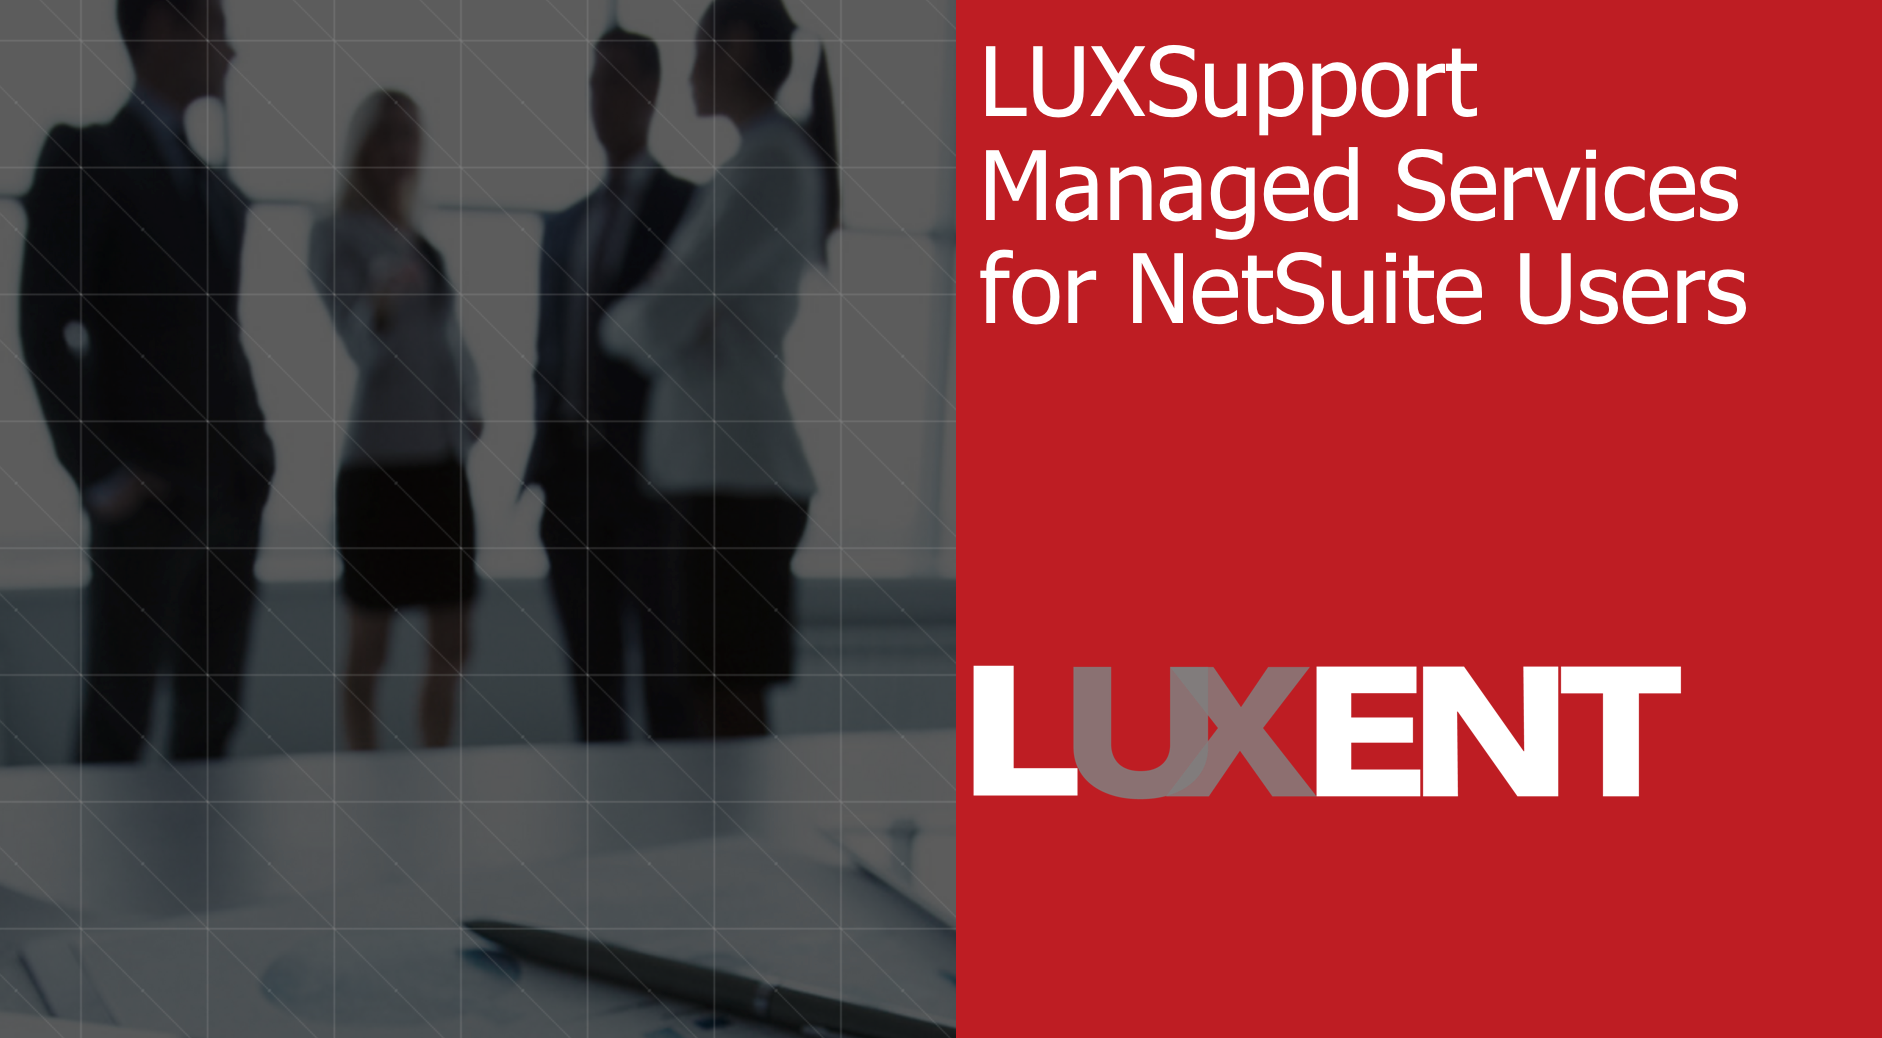 luxsupport managed services for netsuite